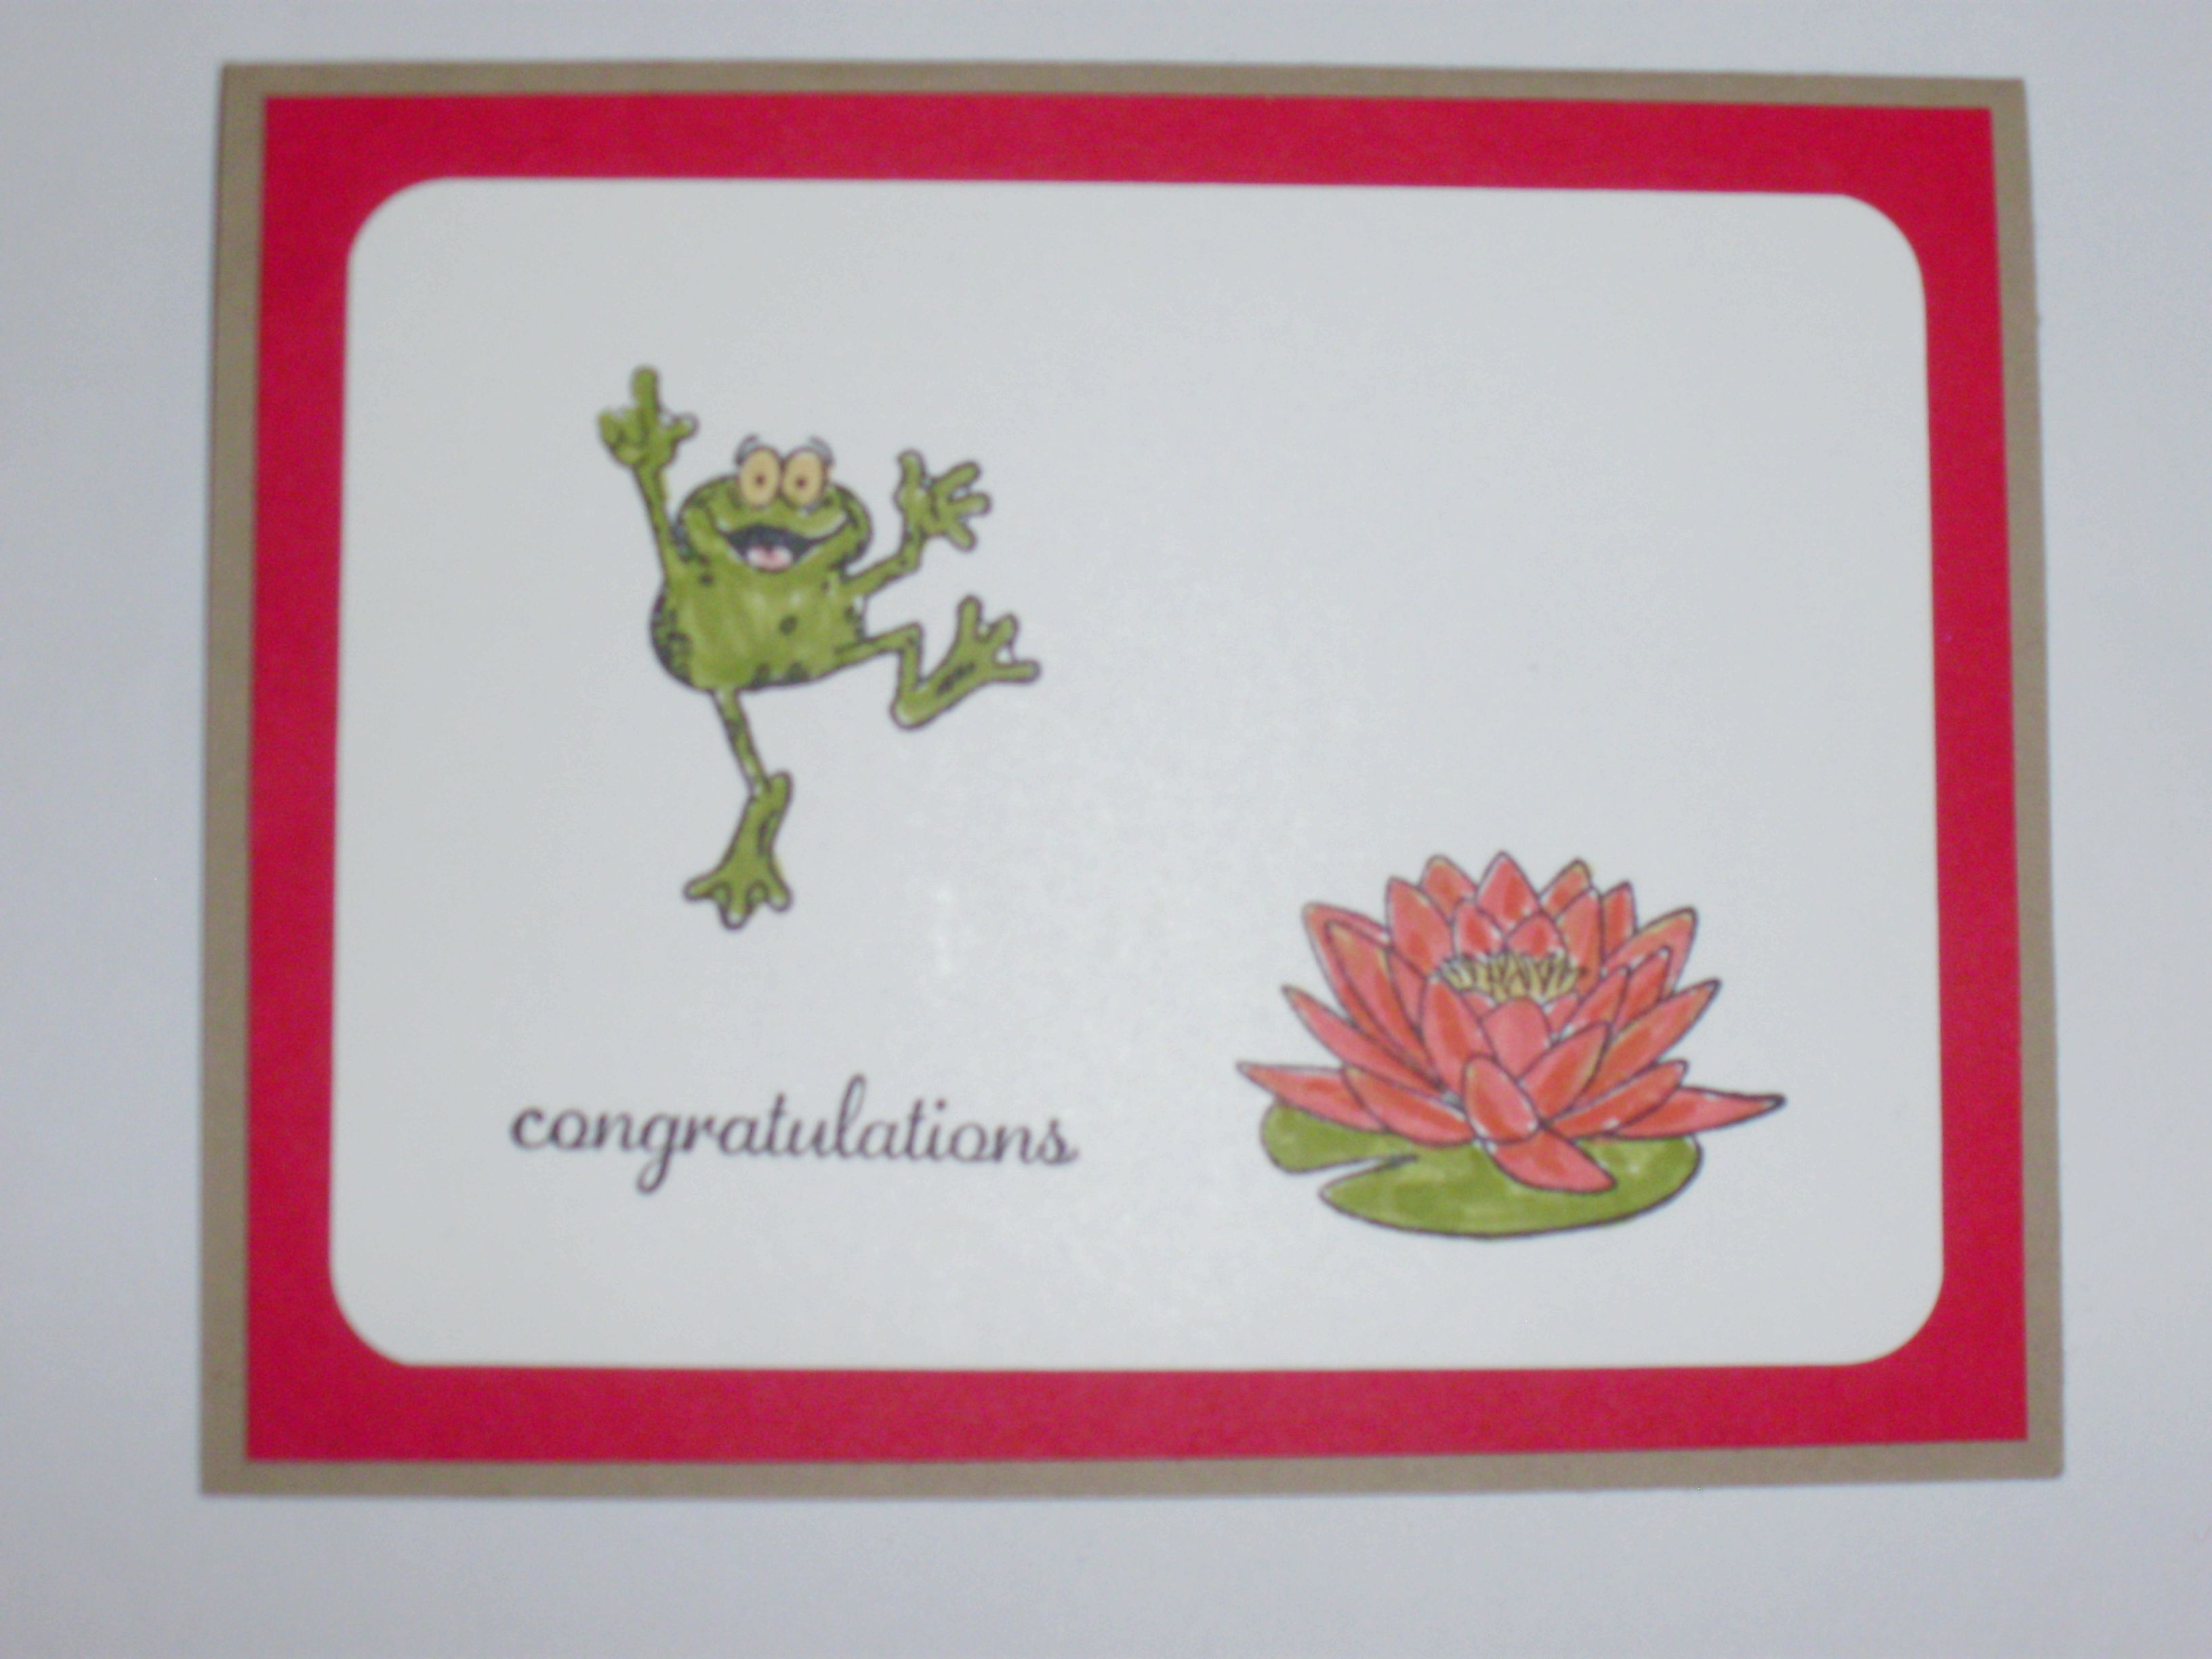 Congratulations on your new pad (home). | Clever cards. | Pinterest ...